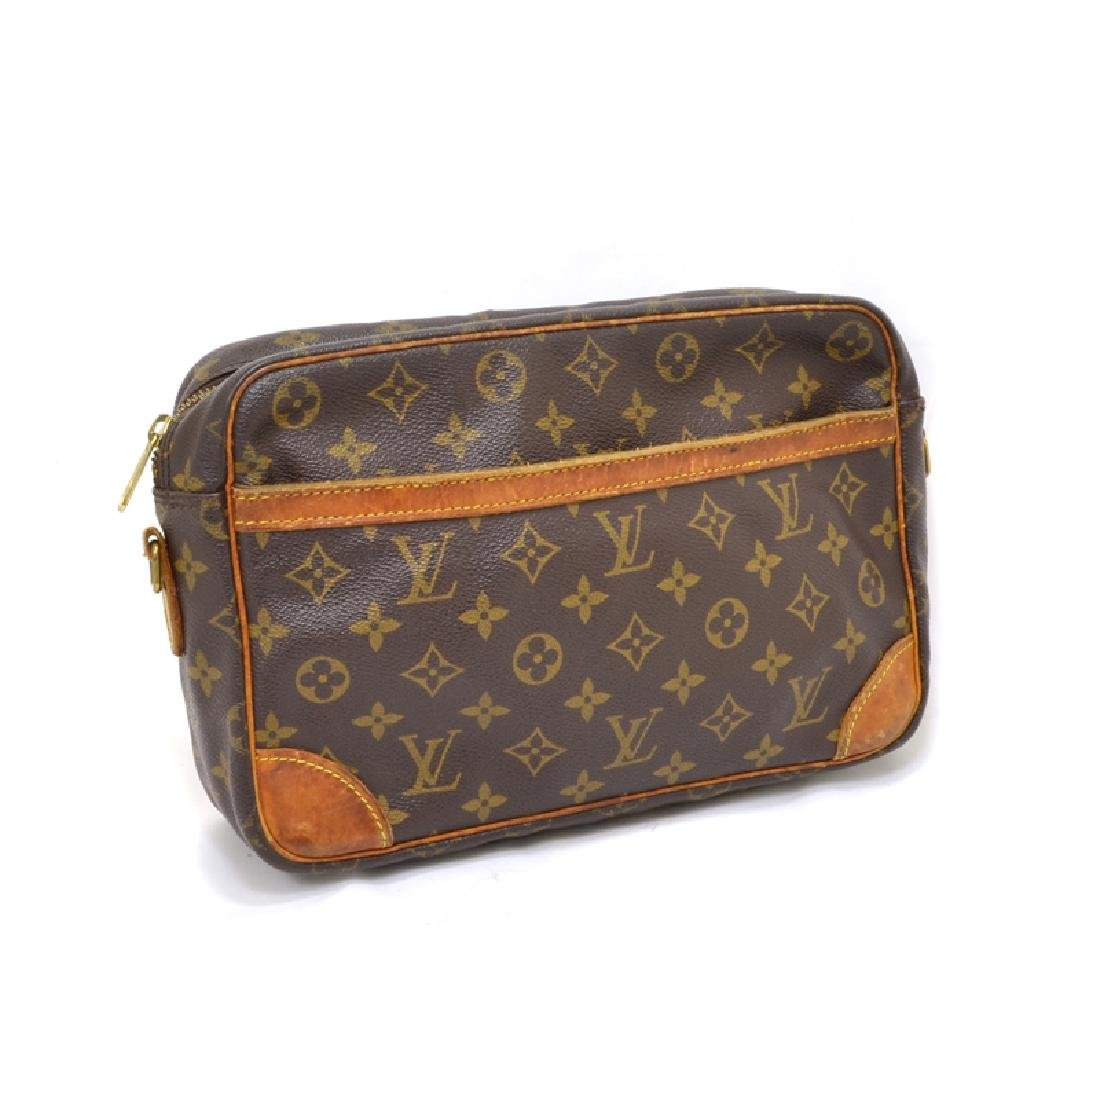 Rare Vintage Louis Vuitton Monogram Trocadero 30 Canvas